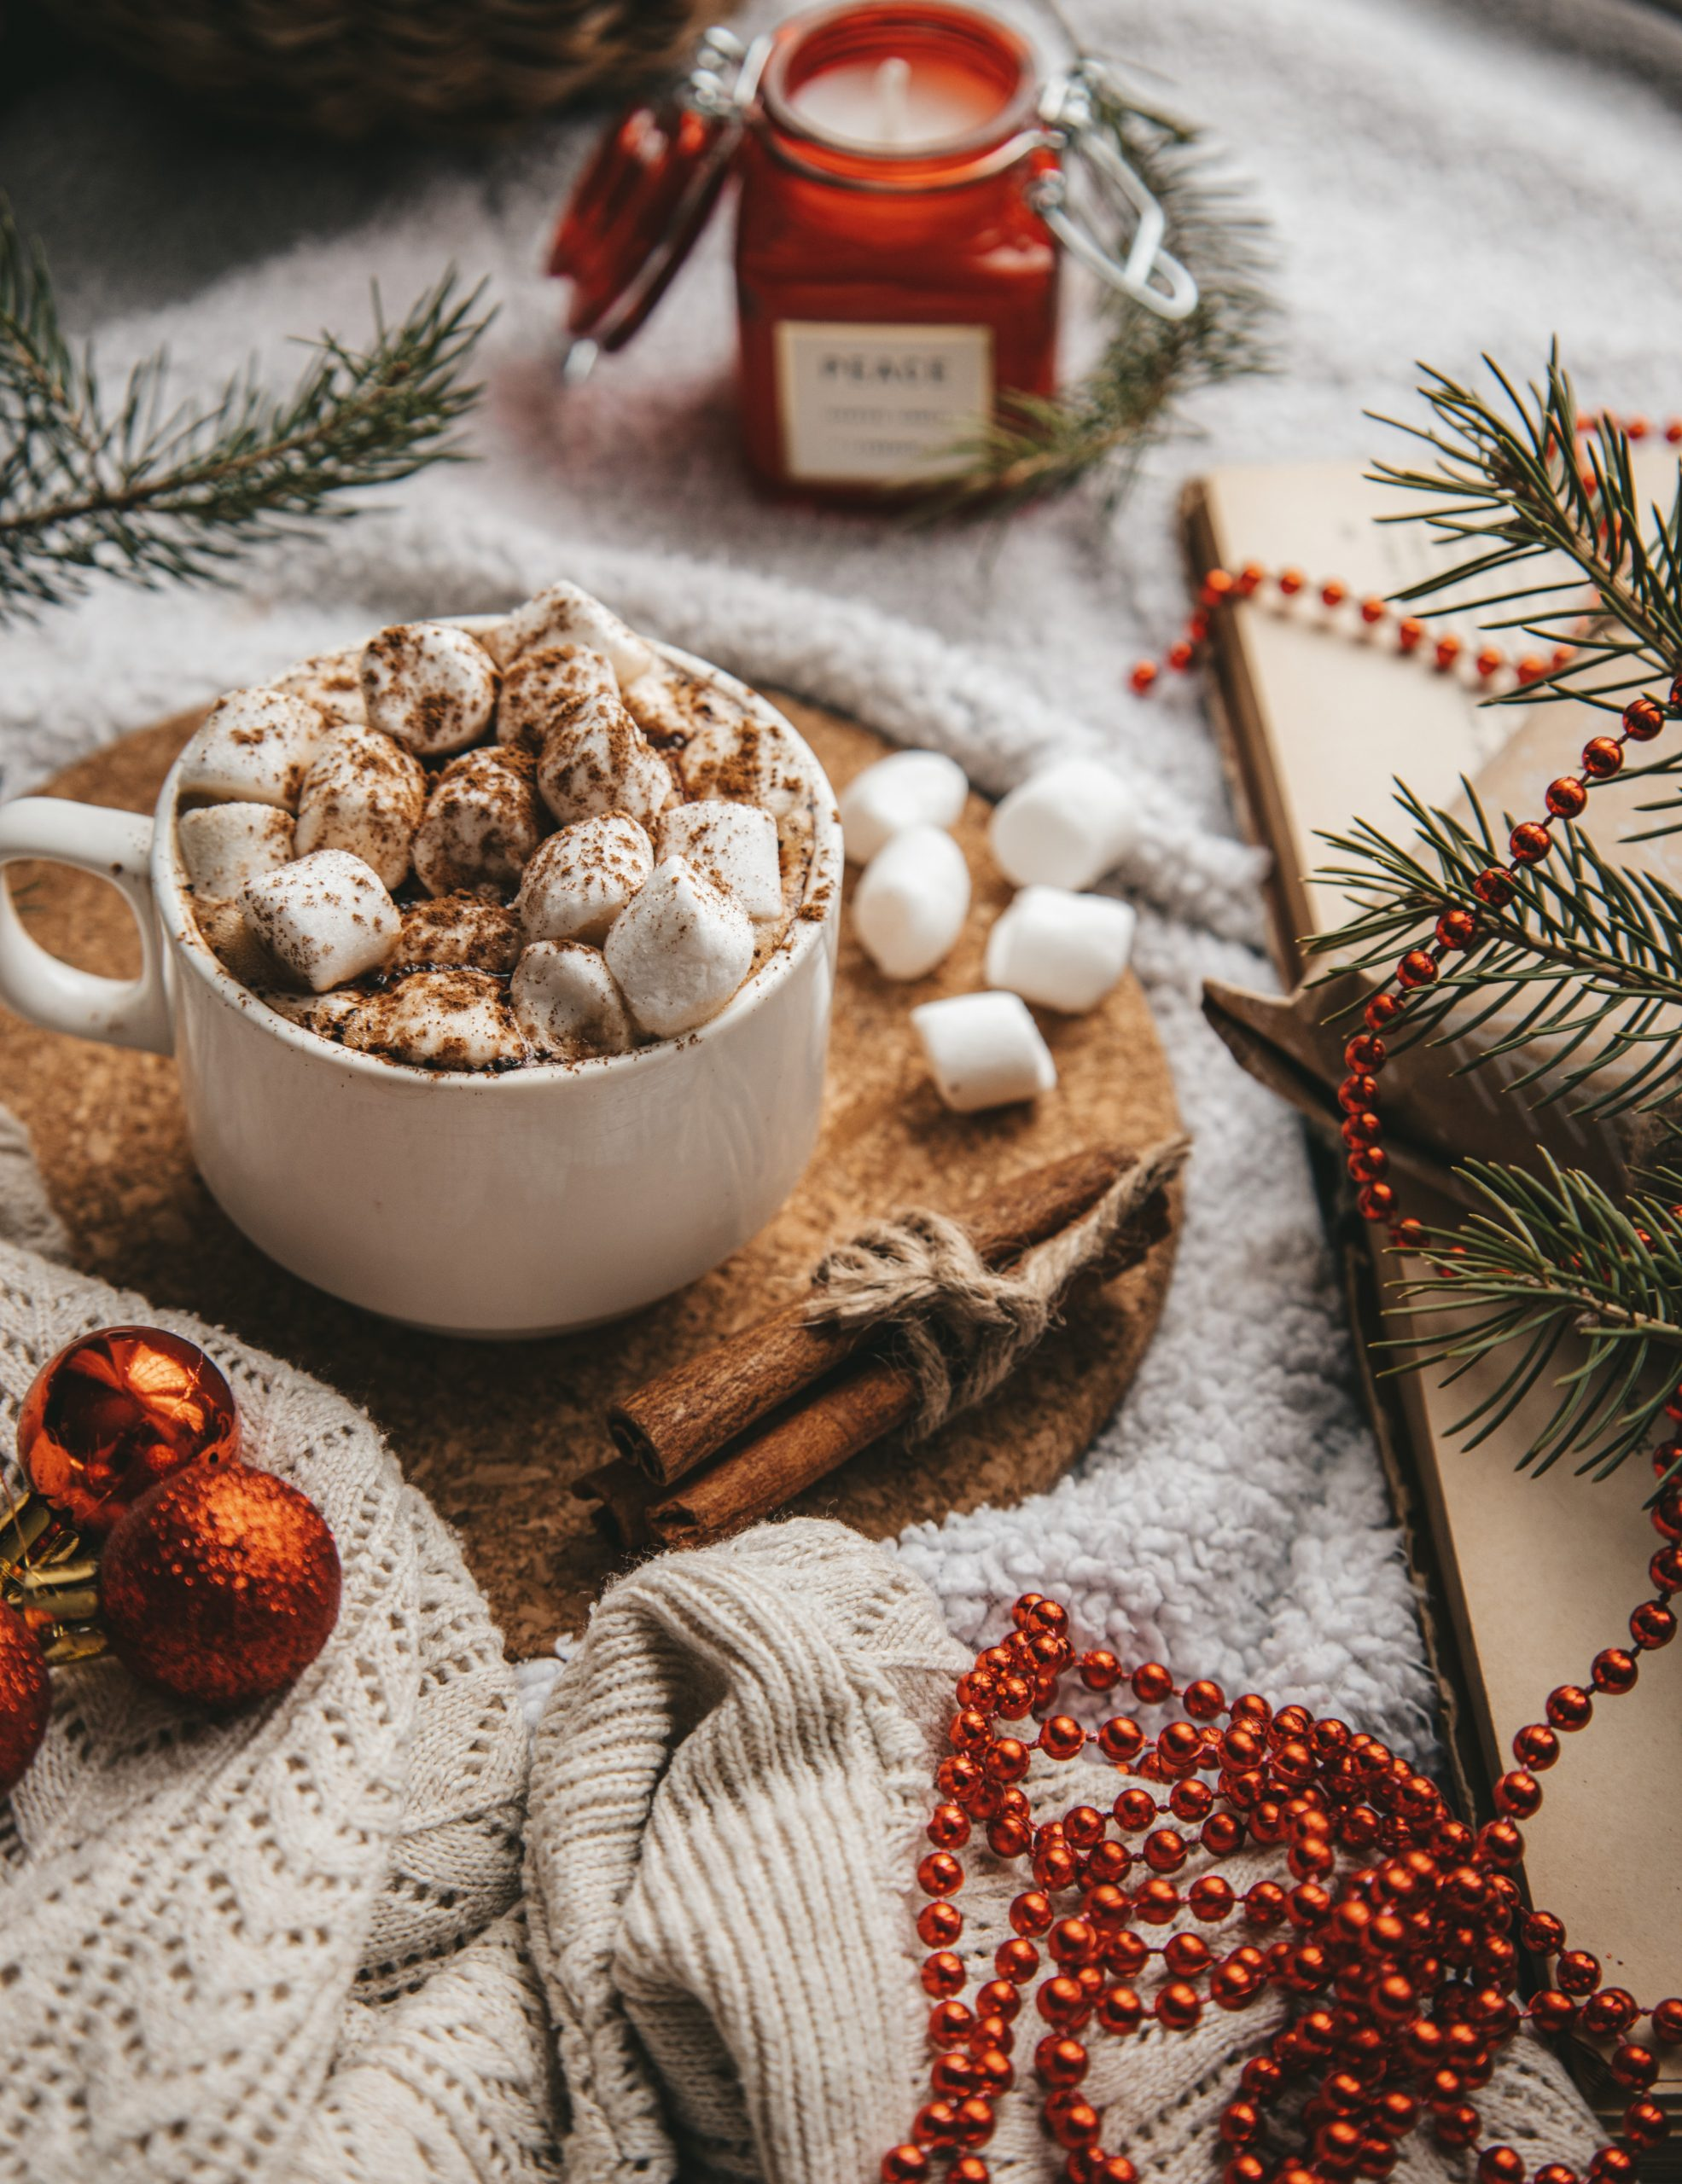 7 Things To Be Grateful For This Christmas